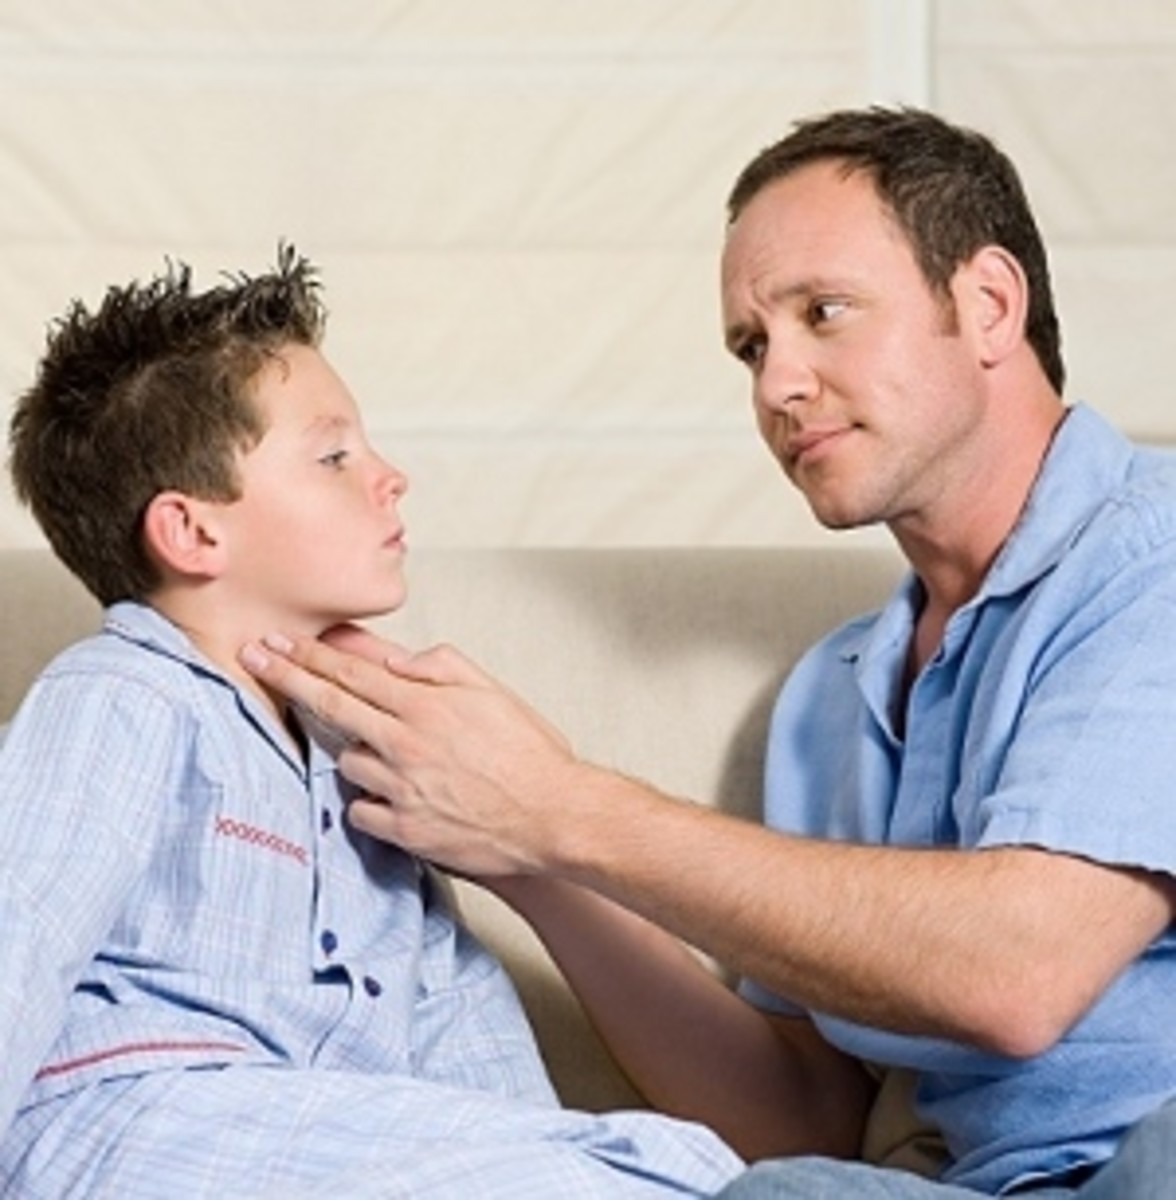 Mumps - A contagious childhood virus that could have serious consequences to starting a family.